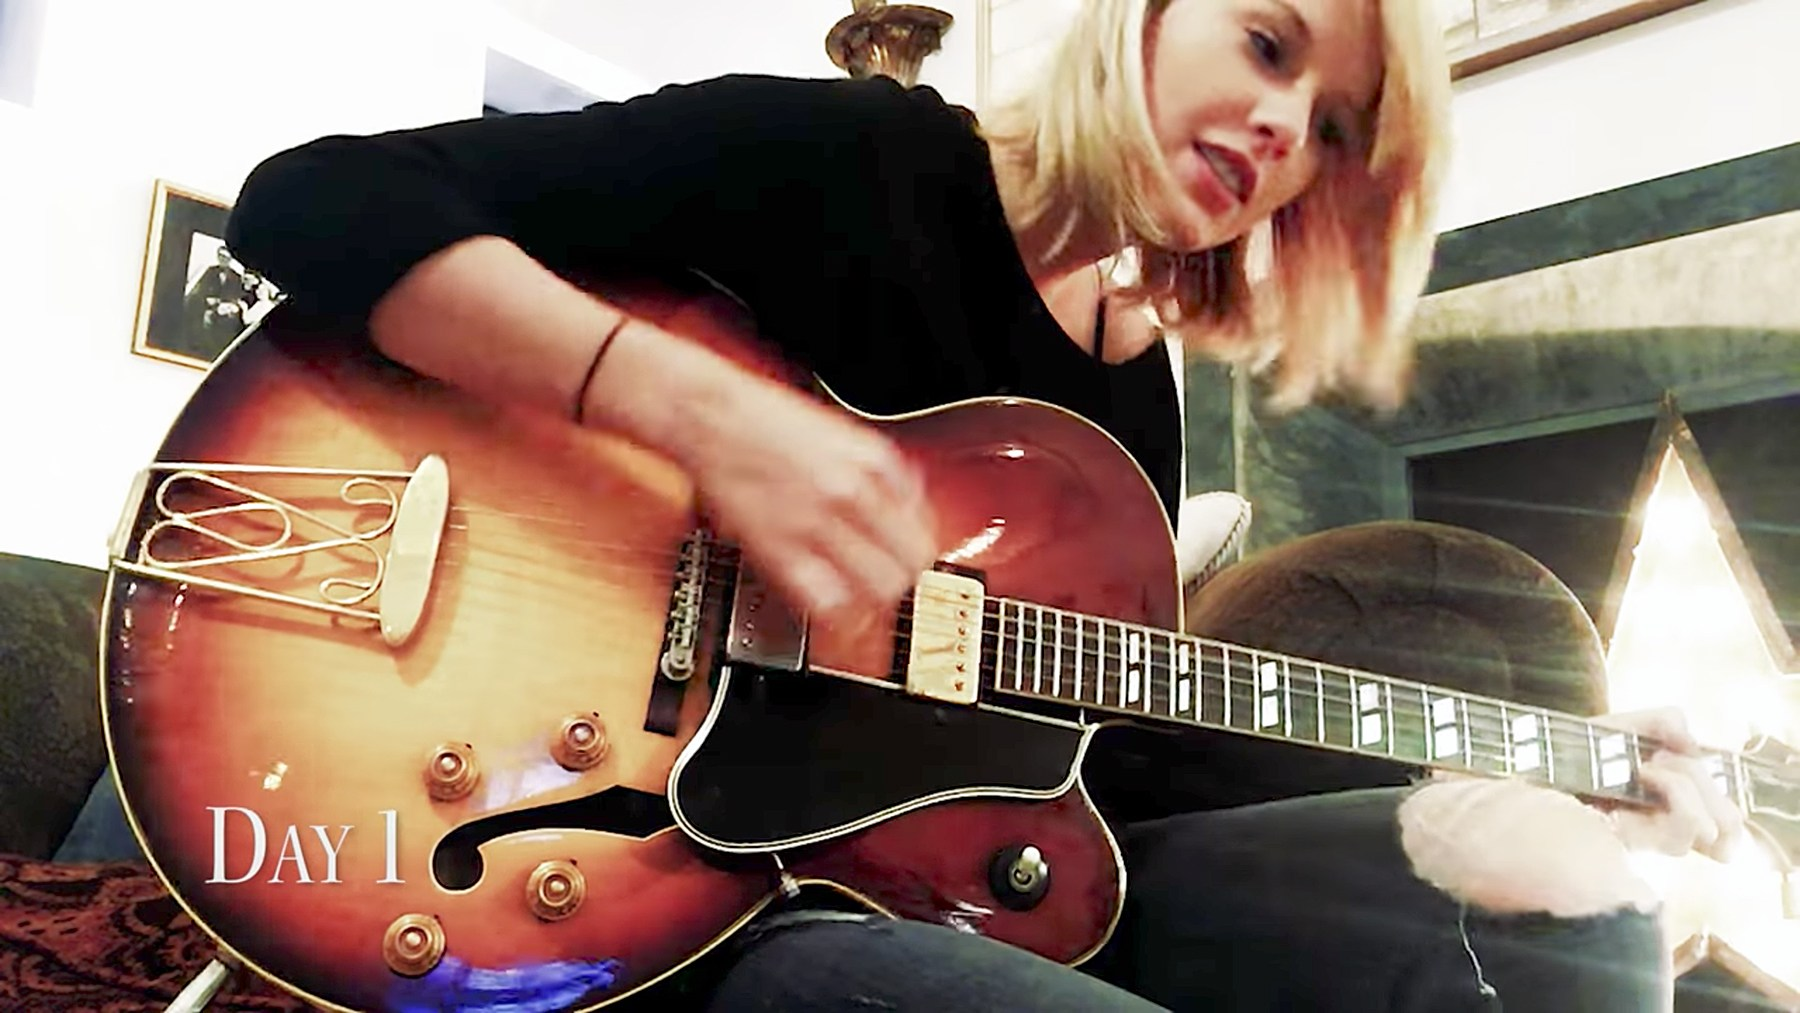 Taylor Swift iThe Making of a Song Gorgeous